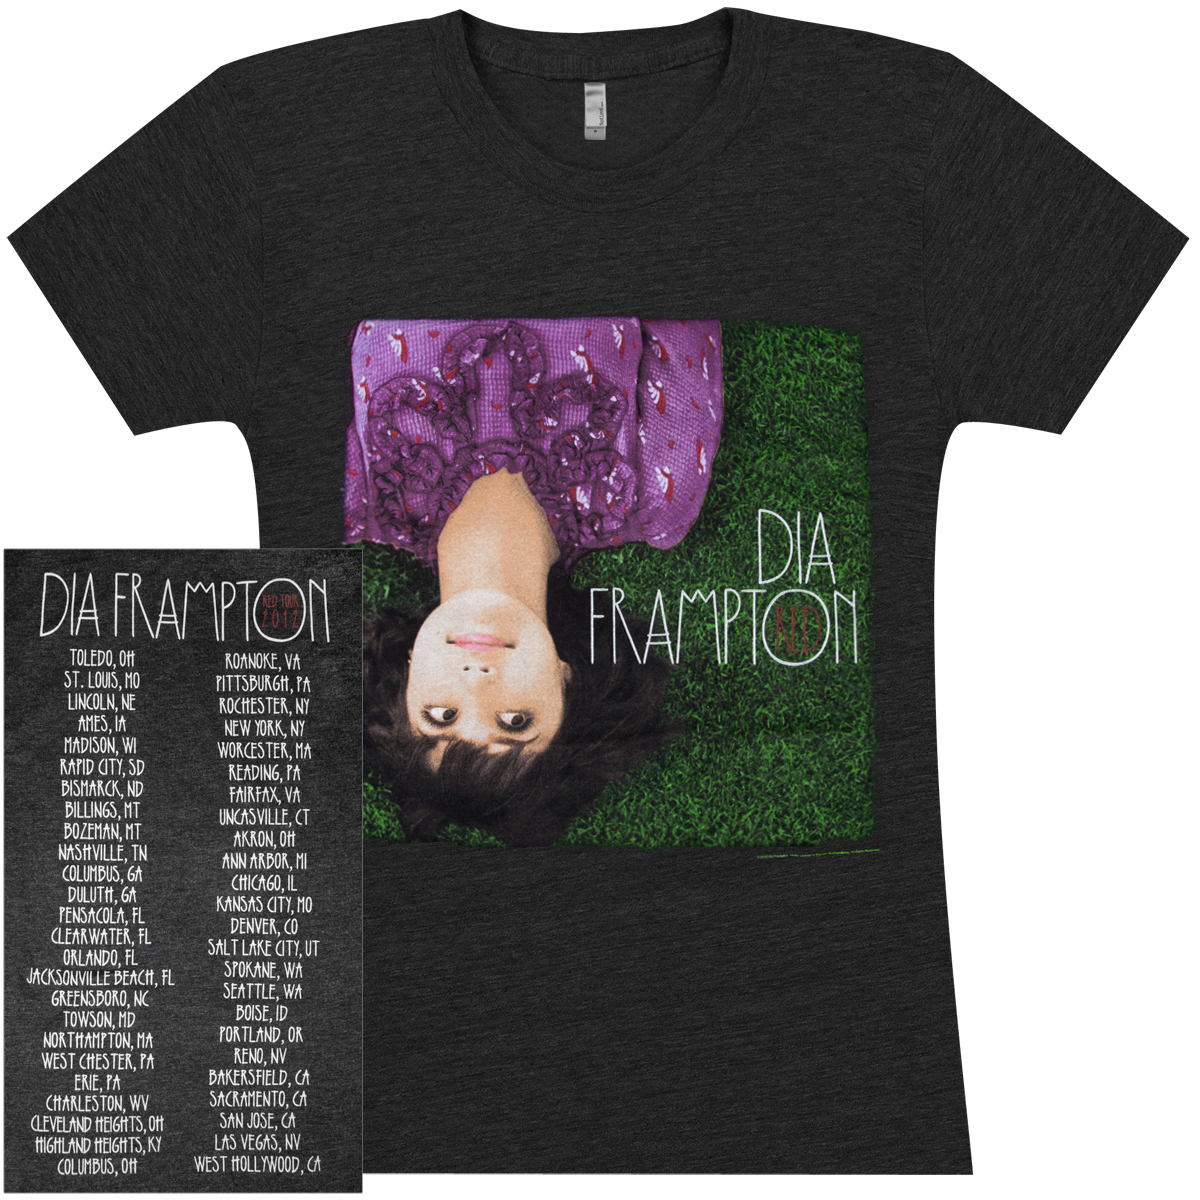 Dia Frampton Album Cover Girlie T-Shirt